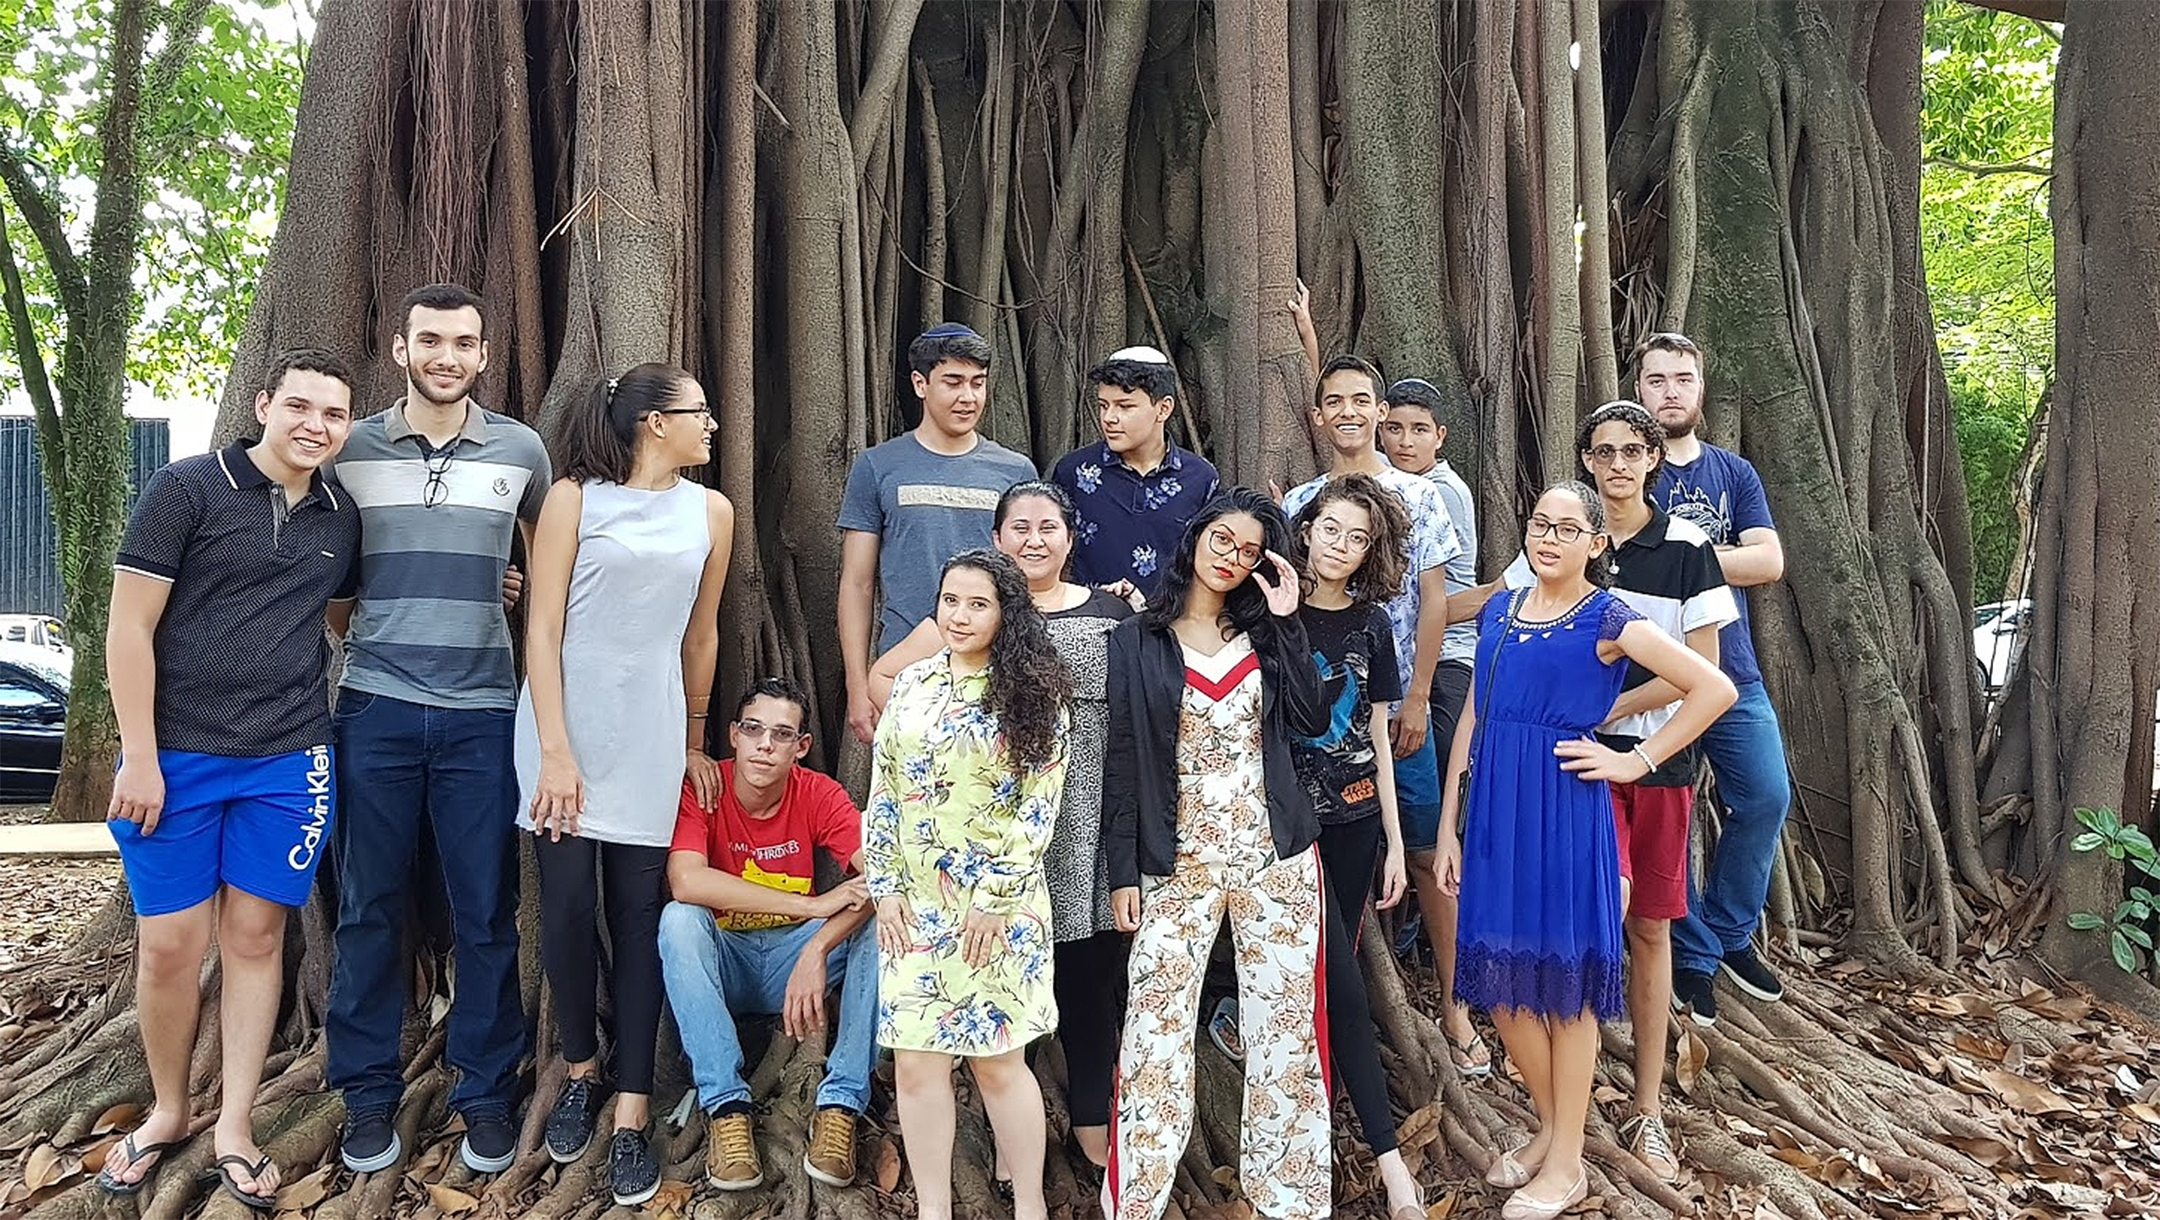 Participants of Brazil's Yeshiva Camp in Sao Paulo in 2018. (Courtesy of Yeshiva Camp)